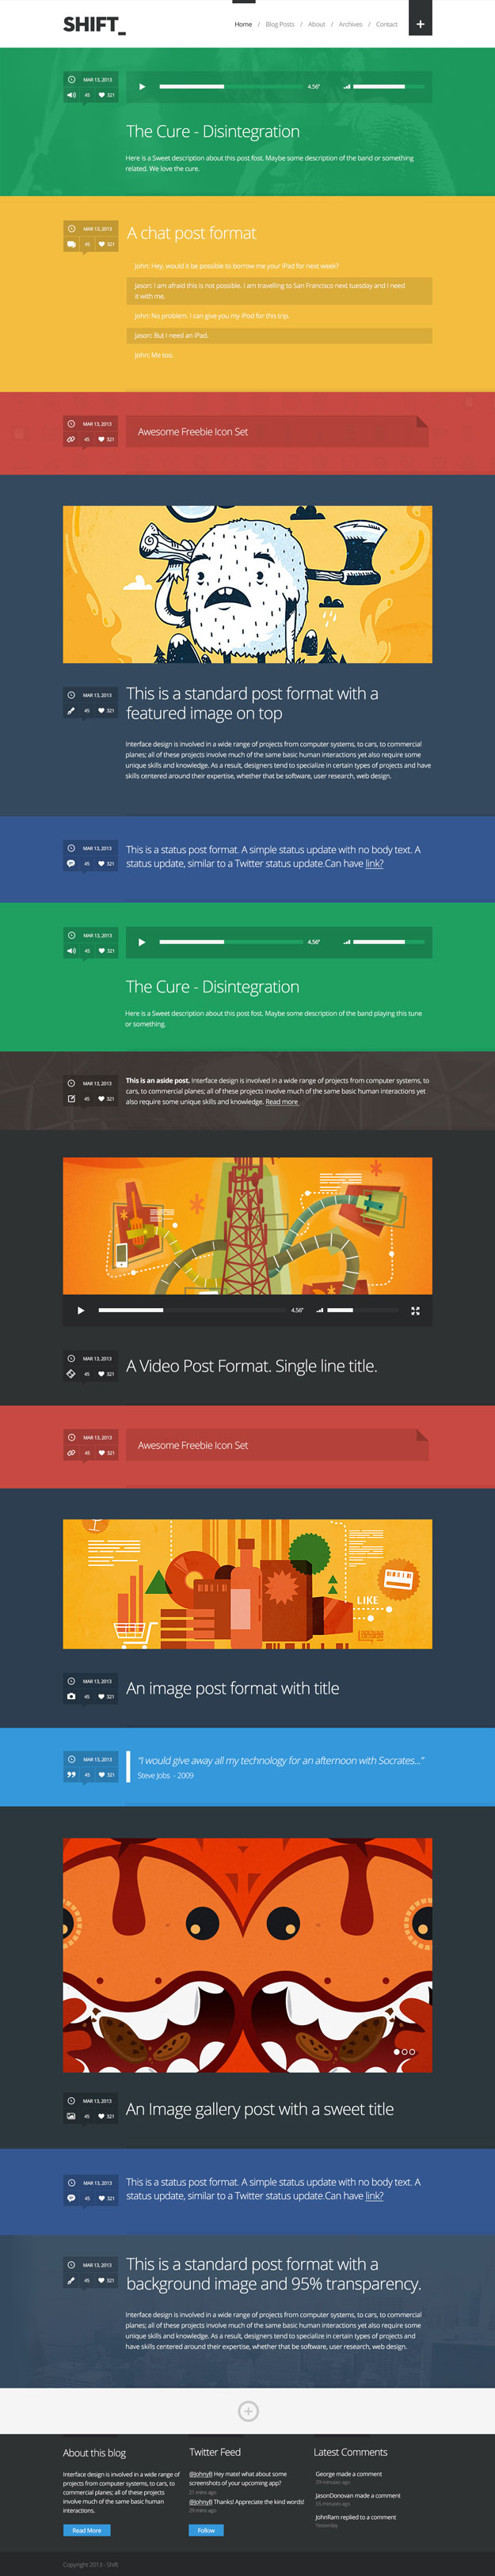 shift tumblog wordpress theme